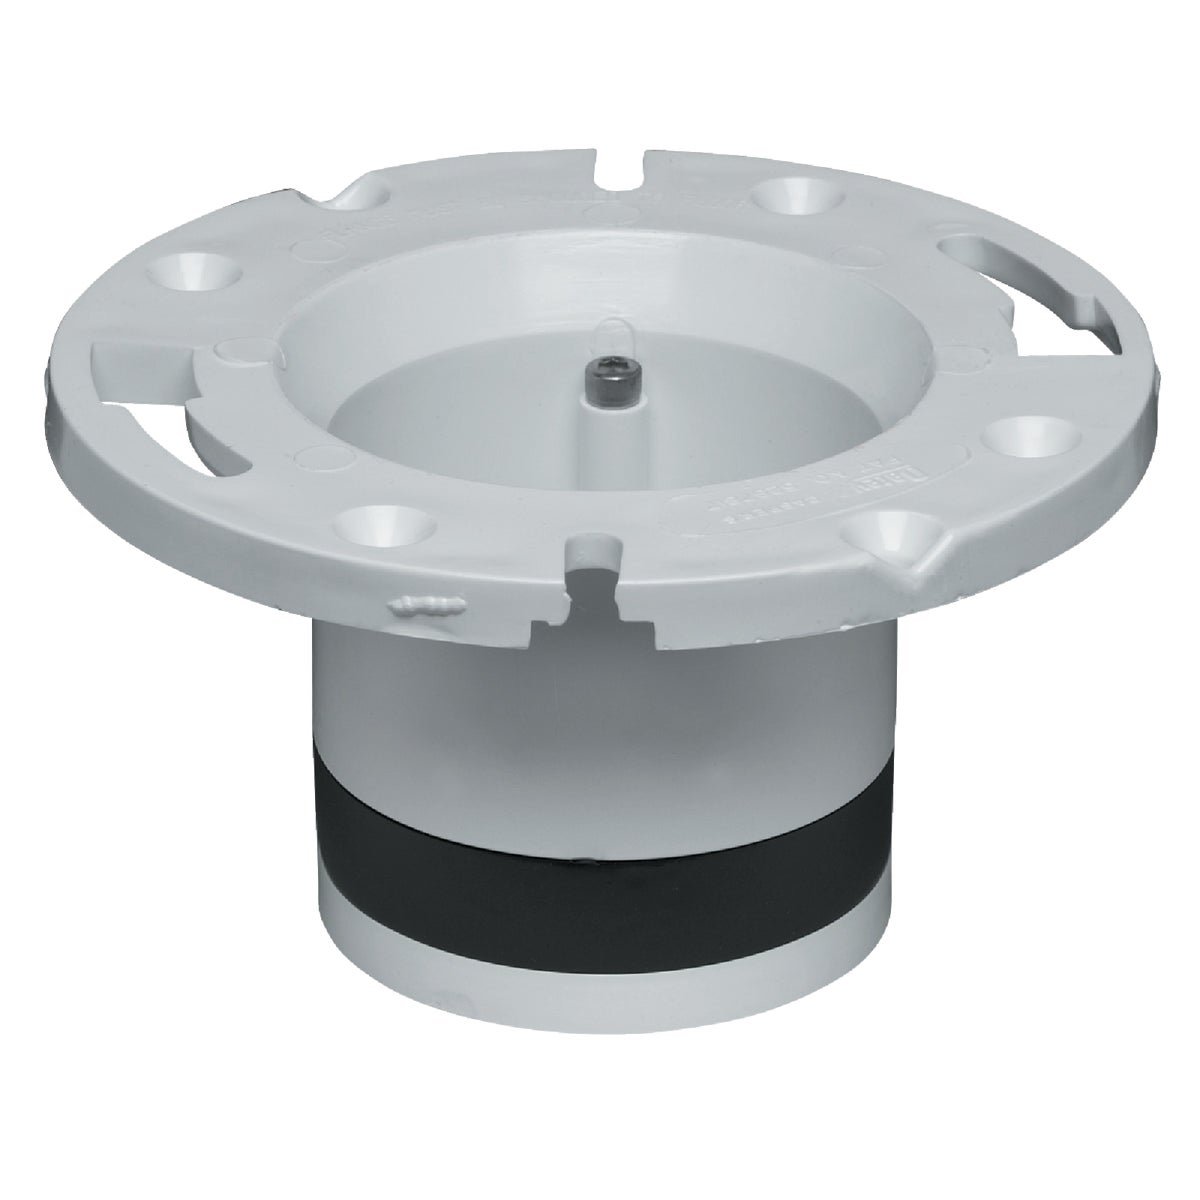 PVC REPLACEMENT FLANGE - 43539 by Oatey Scs